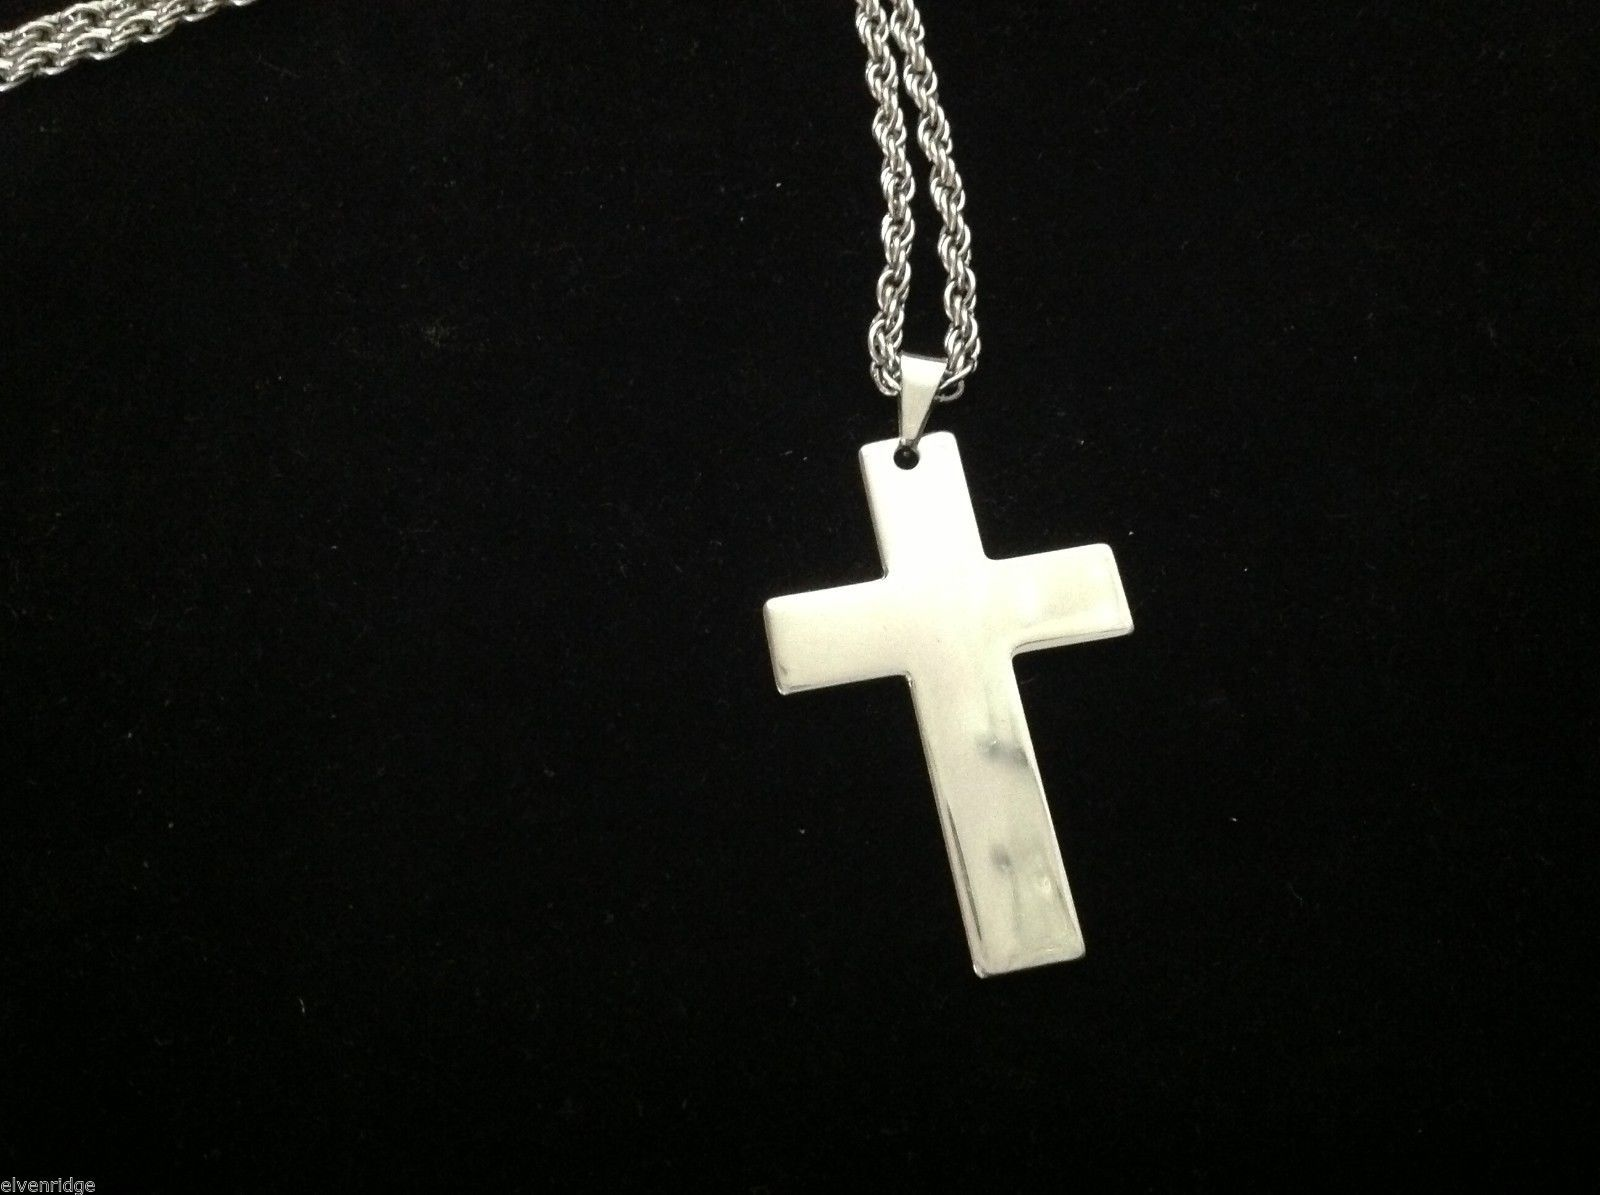 crucifix necklace simple stainless design with sturdy chain and lobster claw